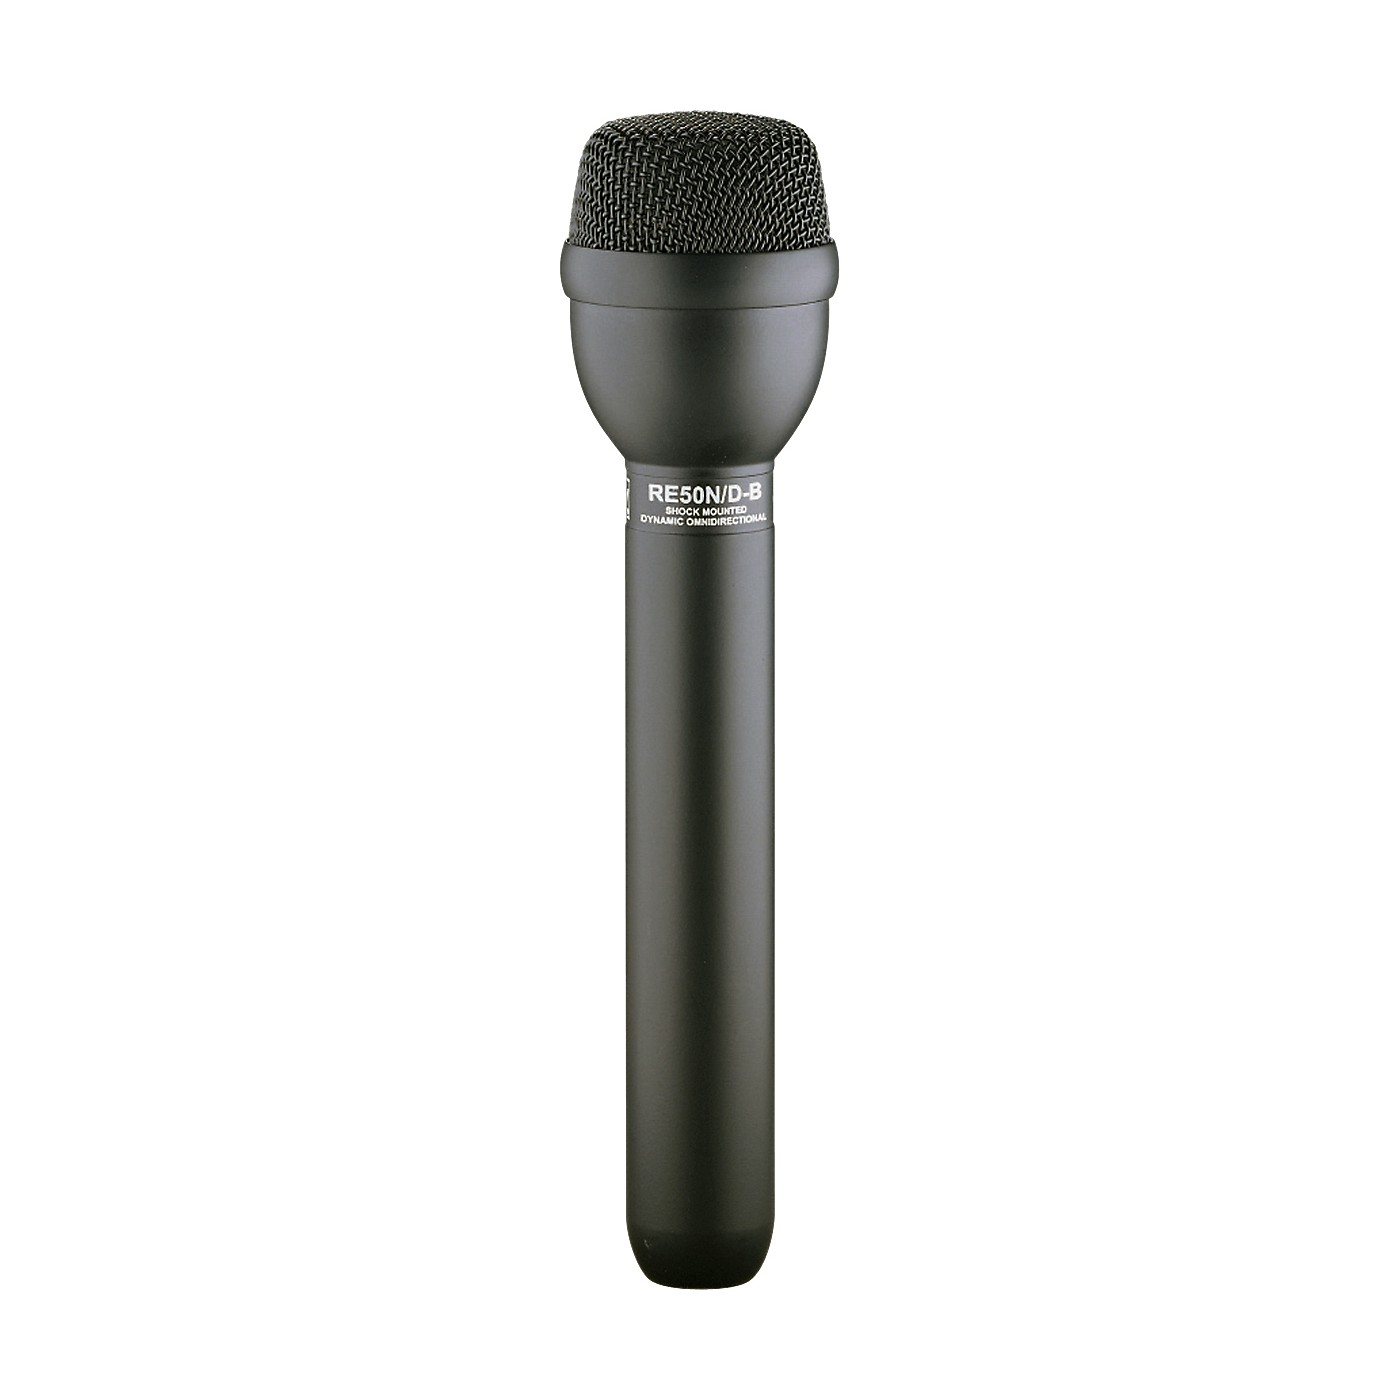 Electro-Voice RE50N/D-B High Output Dynamic Interview Microphone thumbnail